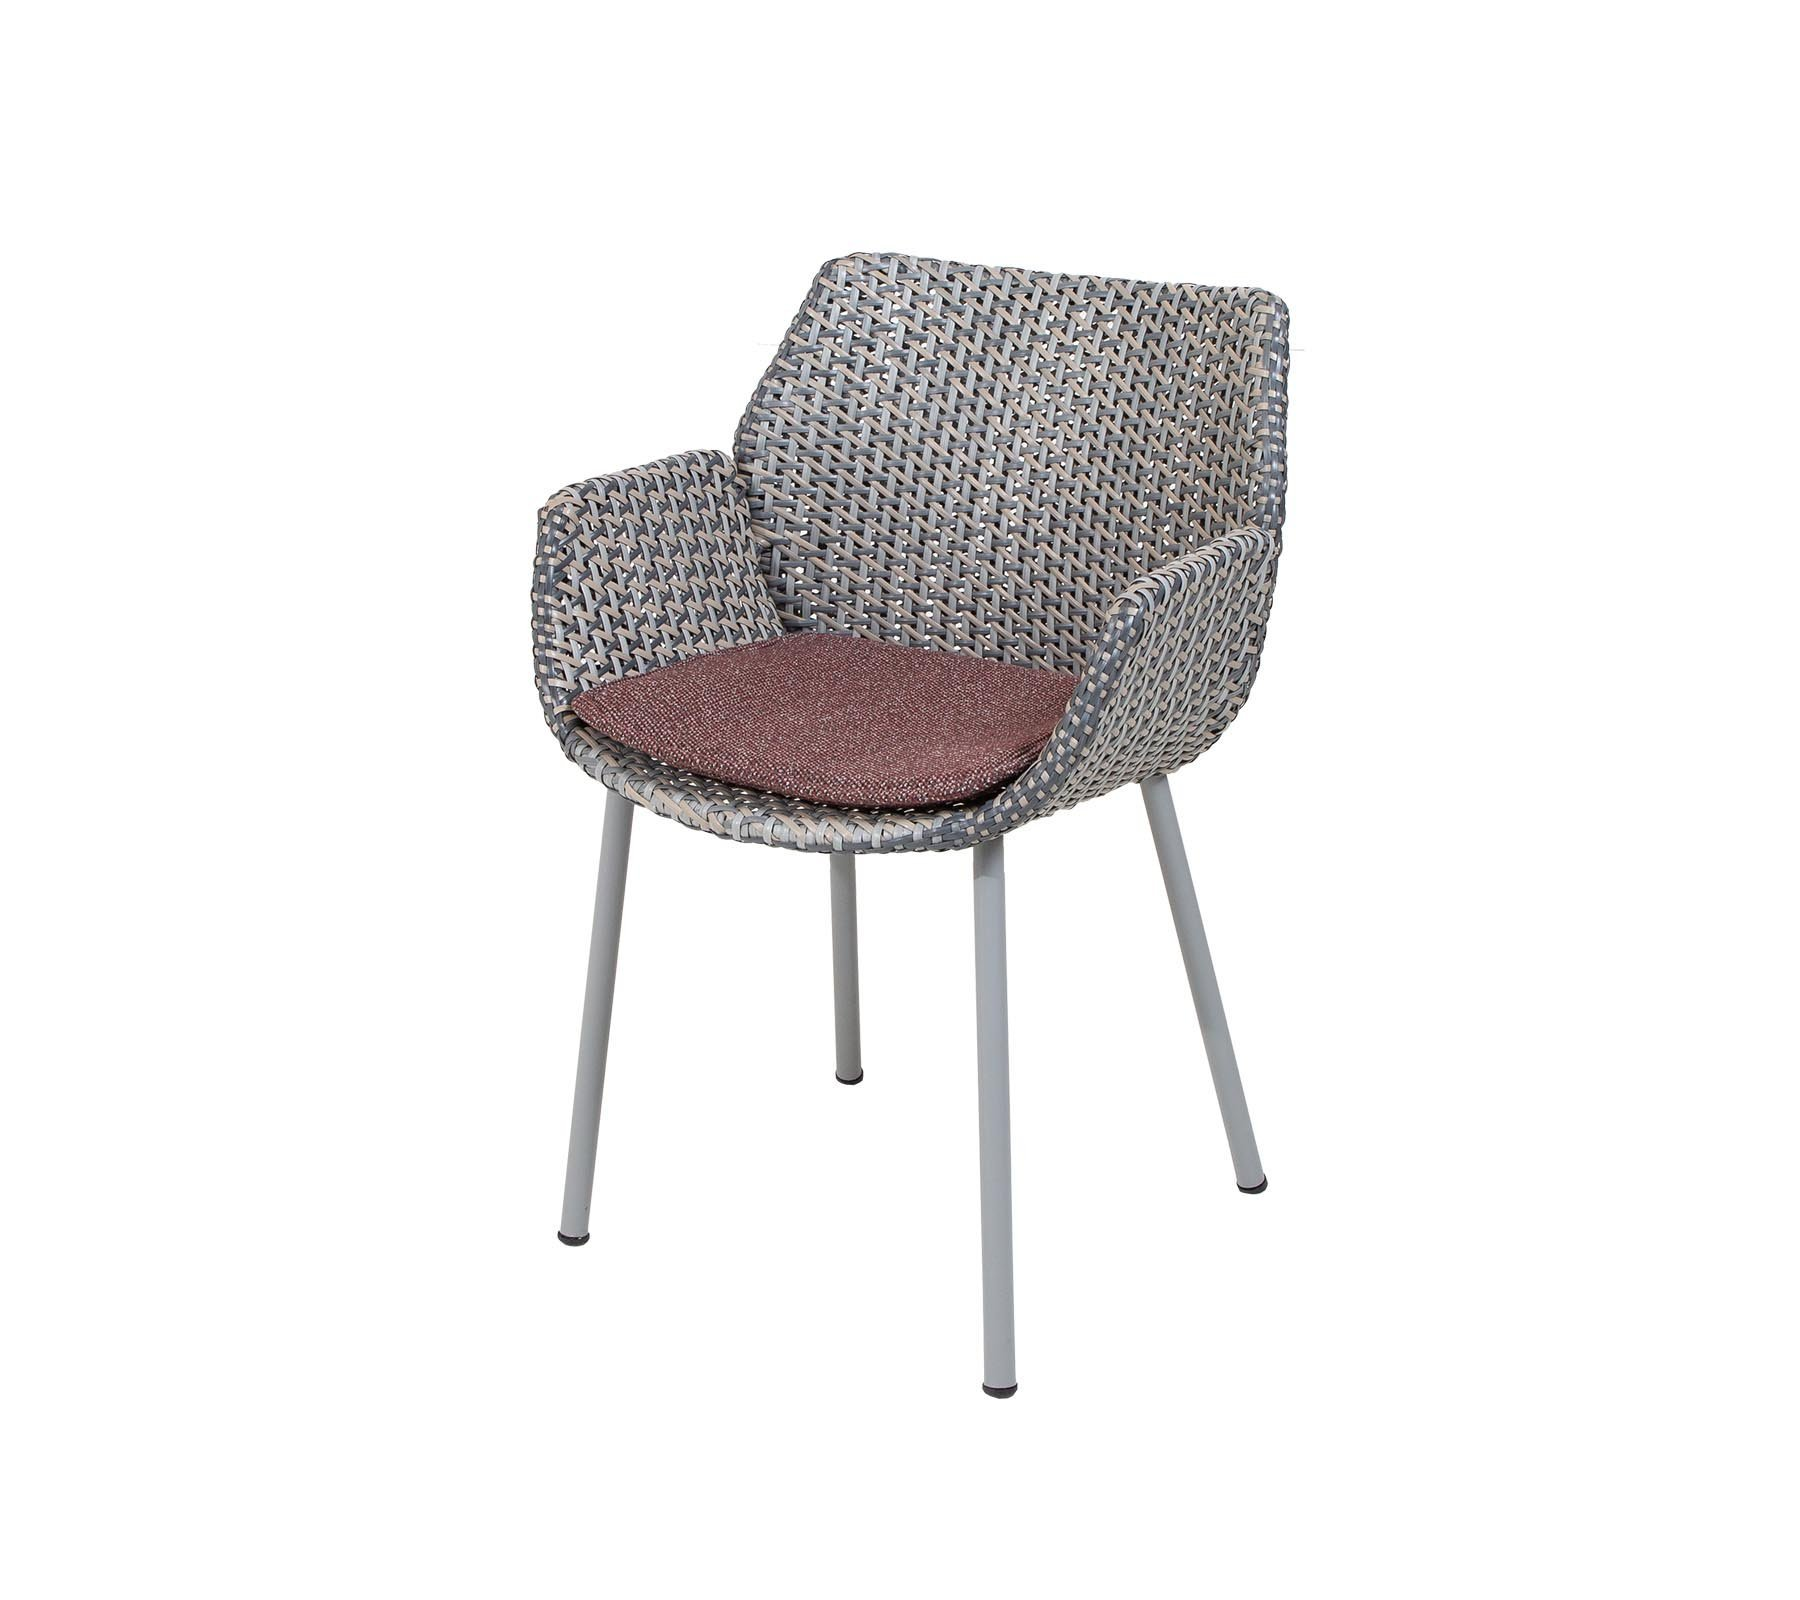 Vibe Chair lounge from Cane-line